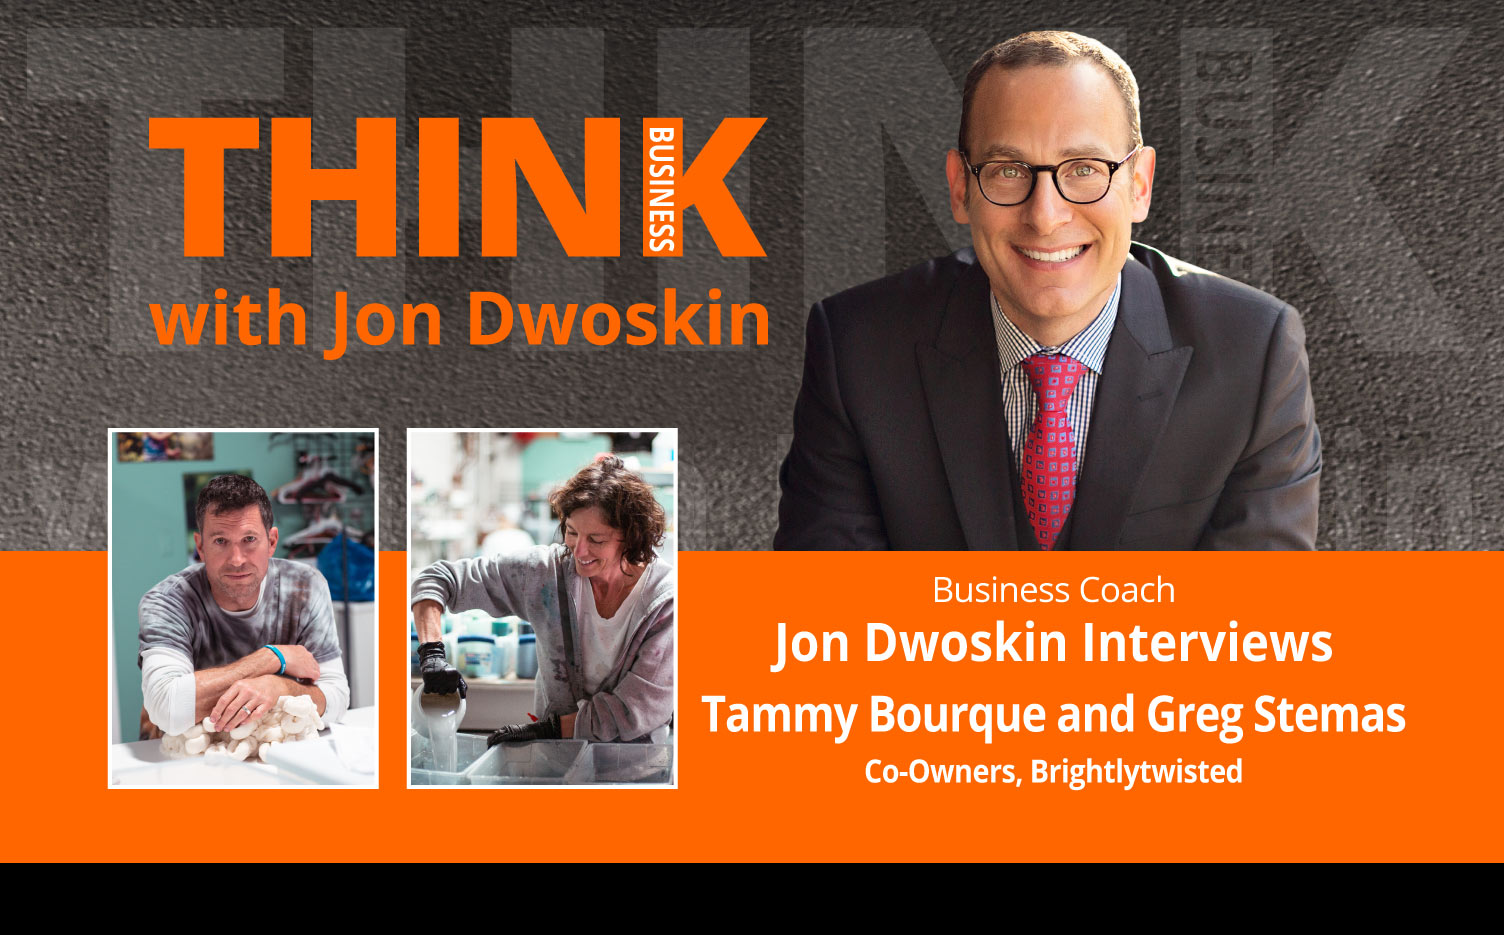 THINK Business Podcast: Jon Dwoskin Interviews Tammy Bourque and Greg Stemas, Co-Owners of Brightlytwisted